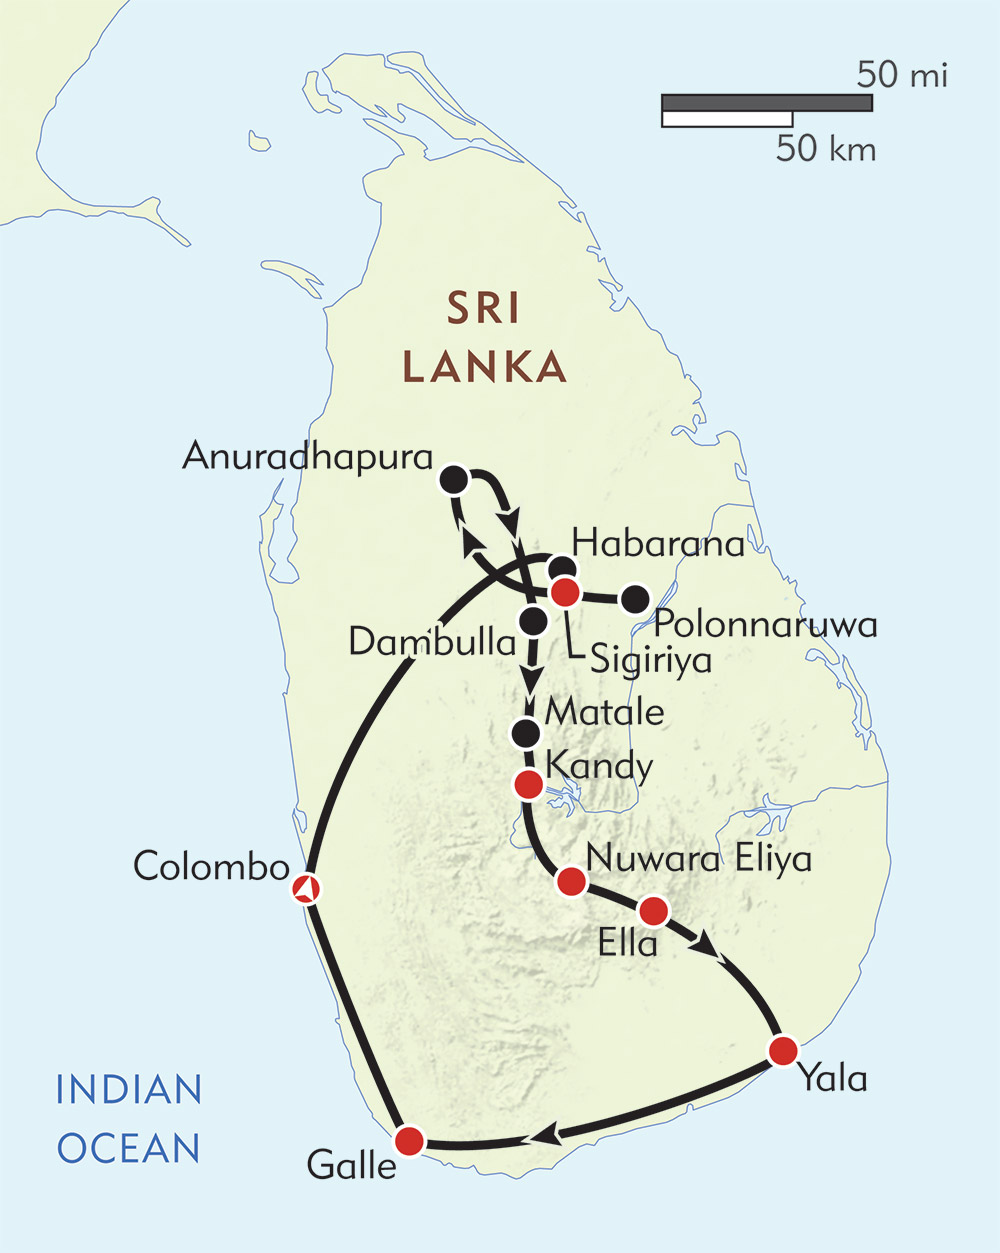 Sri Lanka route-map